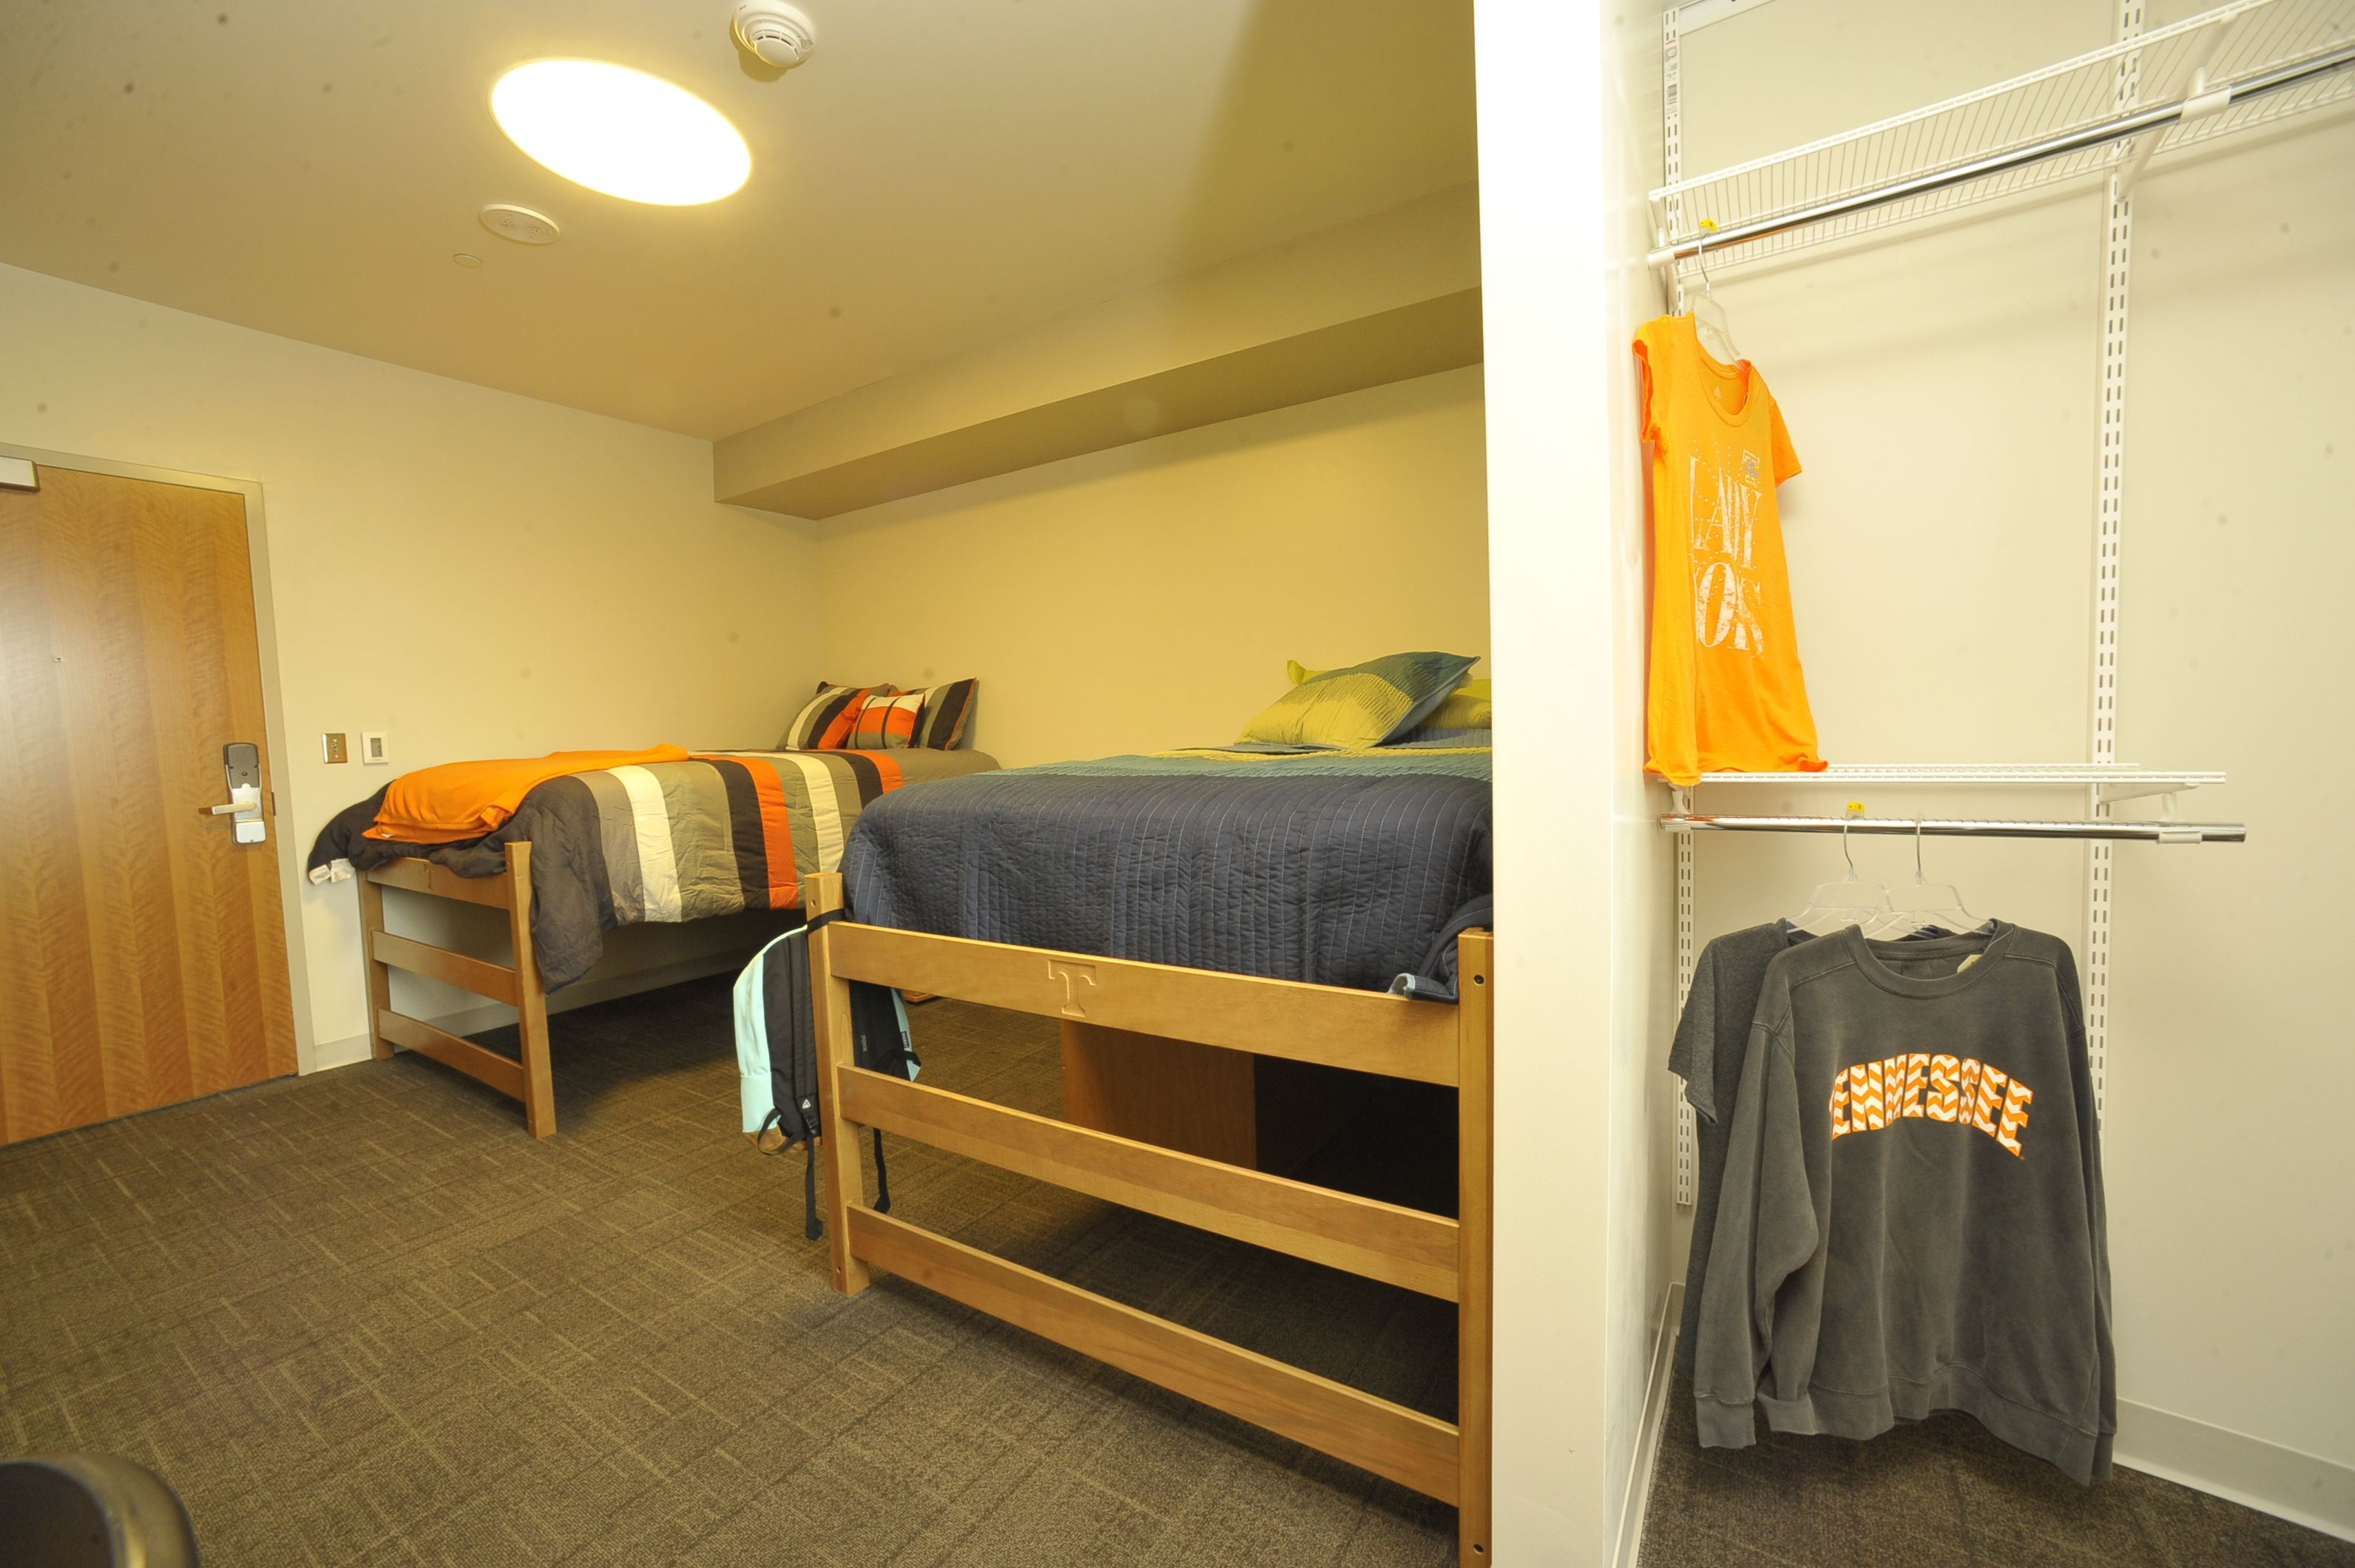 University Of Tennessee Fred D Brown Jr Hall Standard Suite In 2019 University Housing